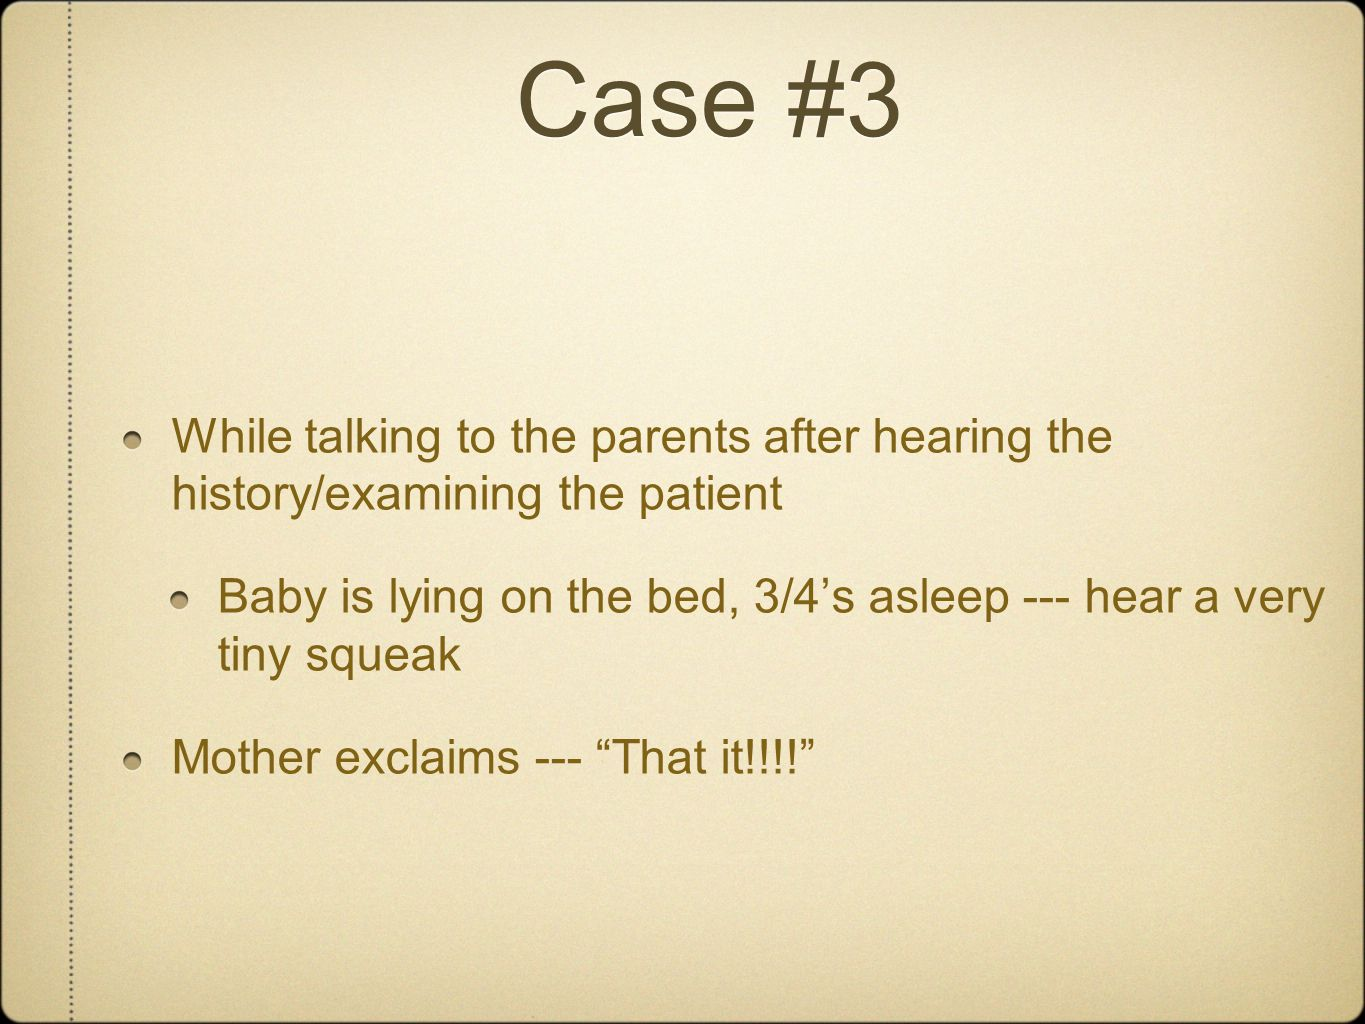 Case #3 While talking to the parents after hearing the history/examining the patient Baby is lying on the bed, 3/4's asleep --- hear a very tiny squea